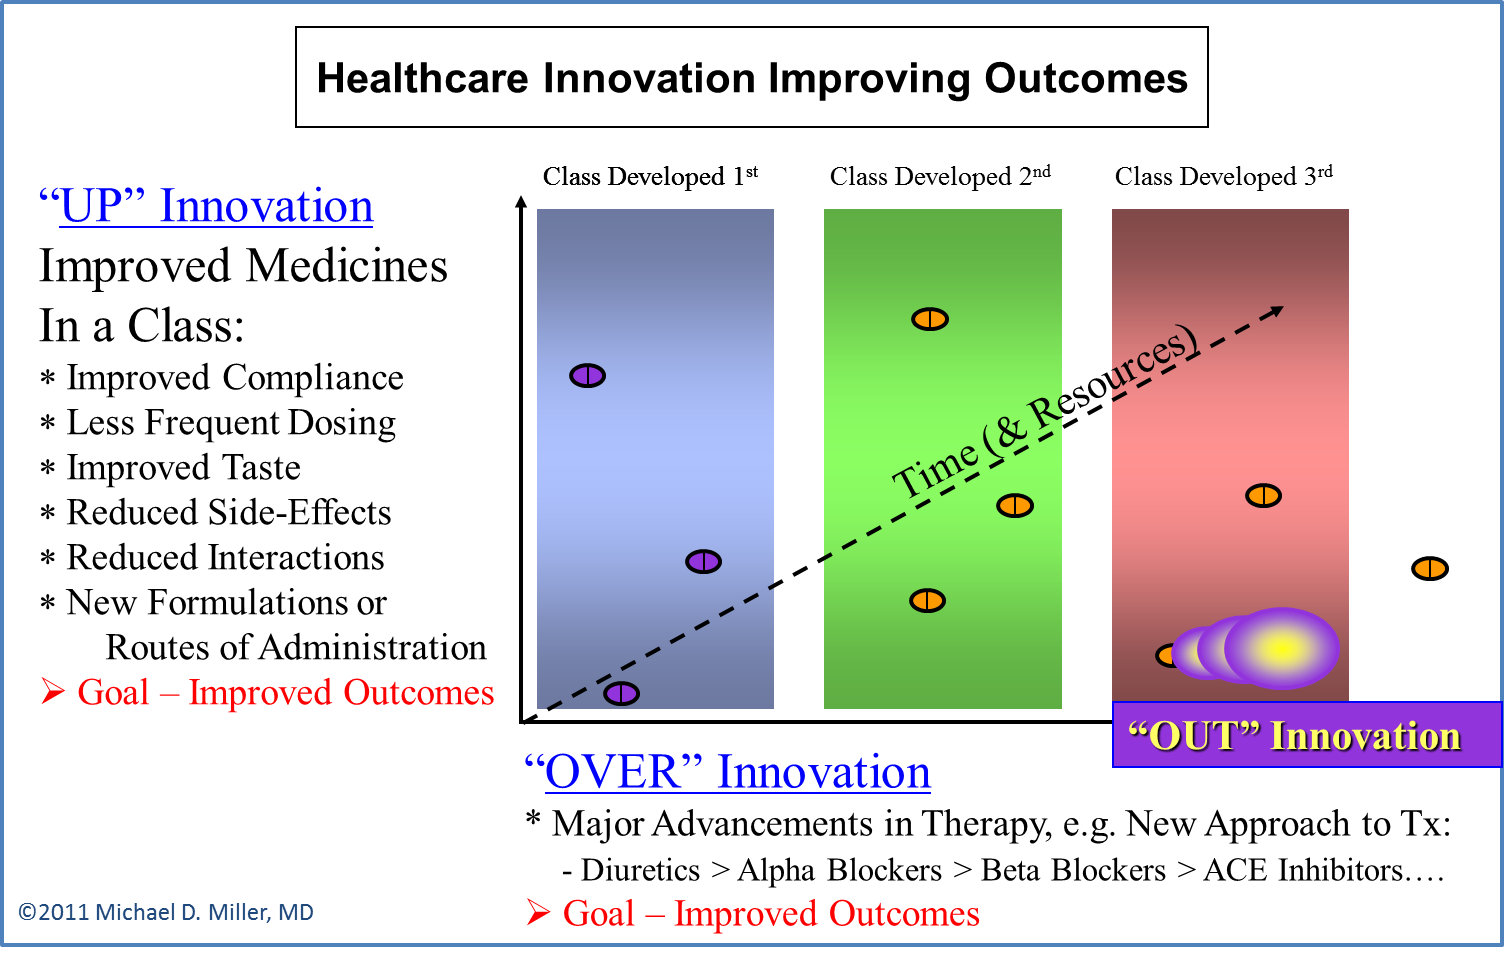 Healthcare Innovation - OUT Innovation - Z Axis - MDMiller 2011